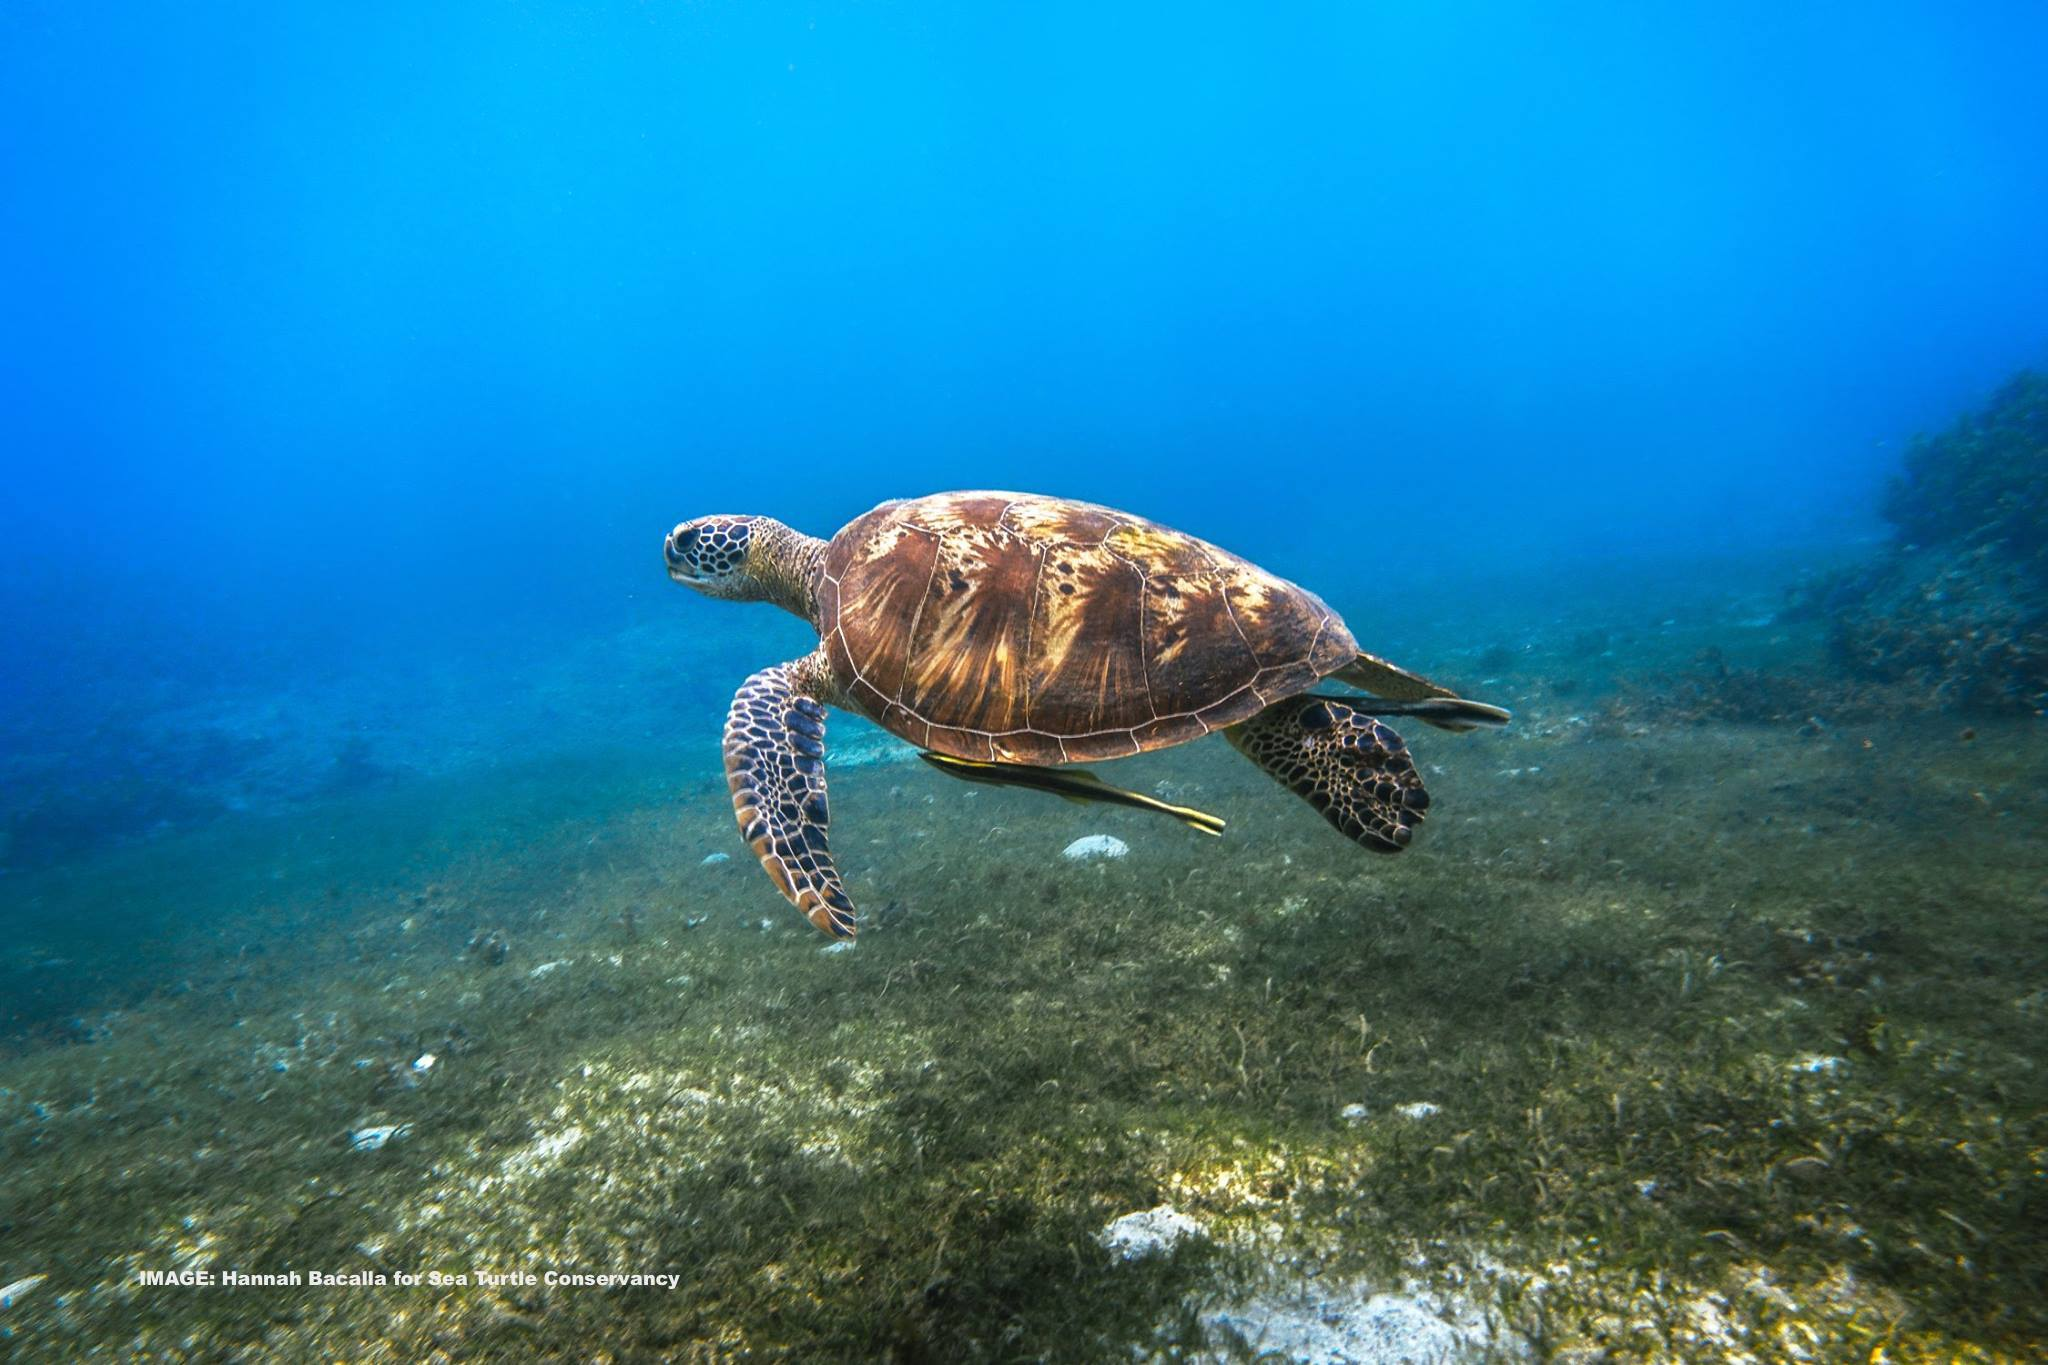 SEA TURTLES CAN SEEM AWKWARD IN COMPARISON TO SOME OF THEIR LITHE AND AGILE DEEP SEA COMPANIONS. STILL, THEY NAVIGATE THEIR OCEAN HOMES IN BEAUTIFUL FASHION. IMAGE: HANNAH BACALLA FOR  SEA TURTLE CONSERVANCY